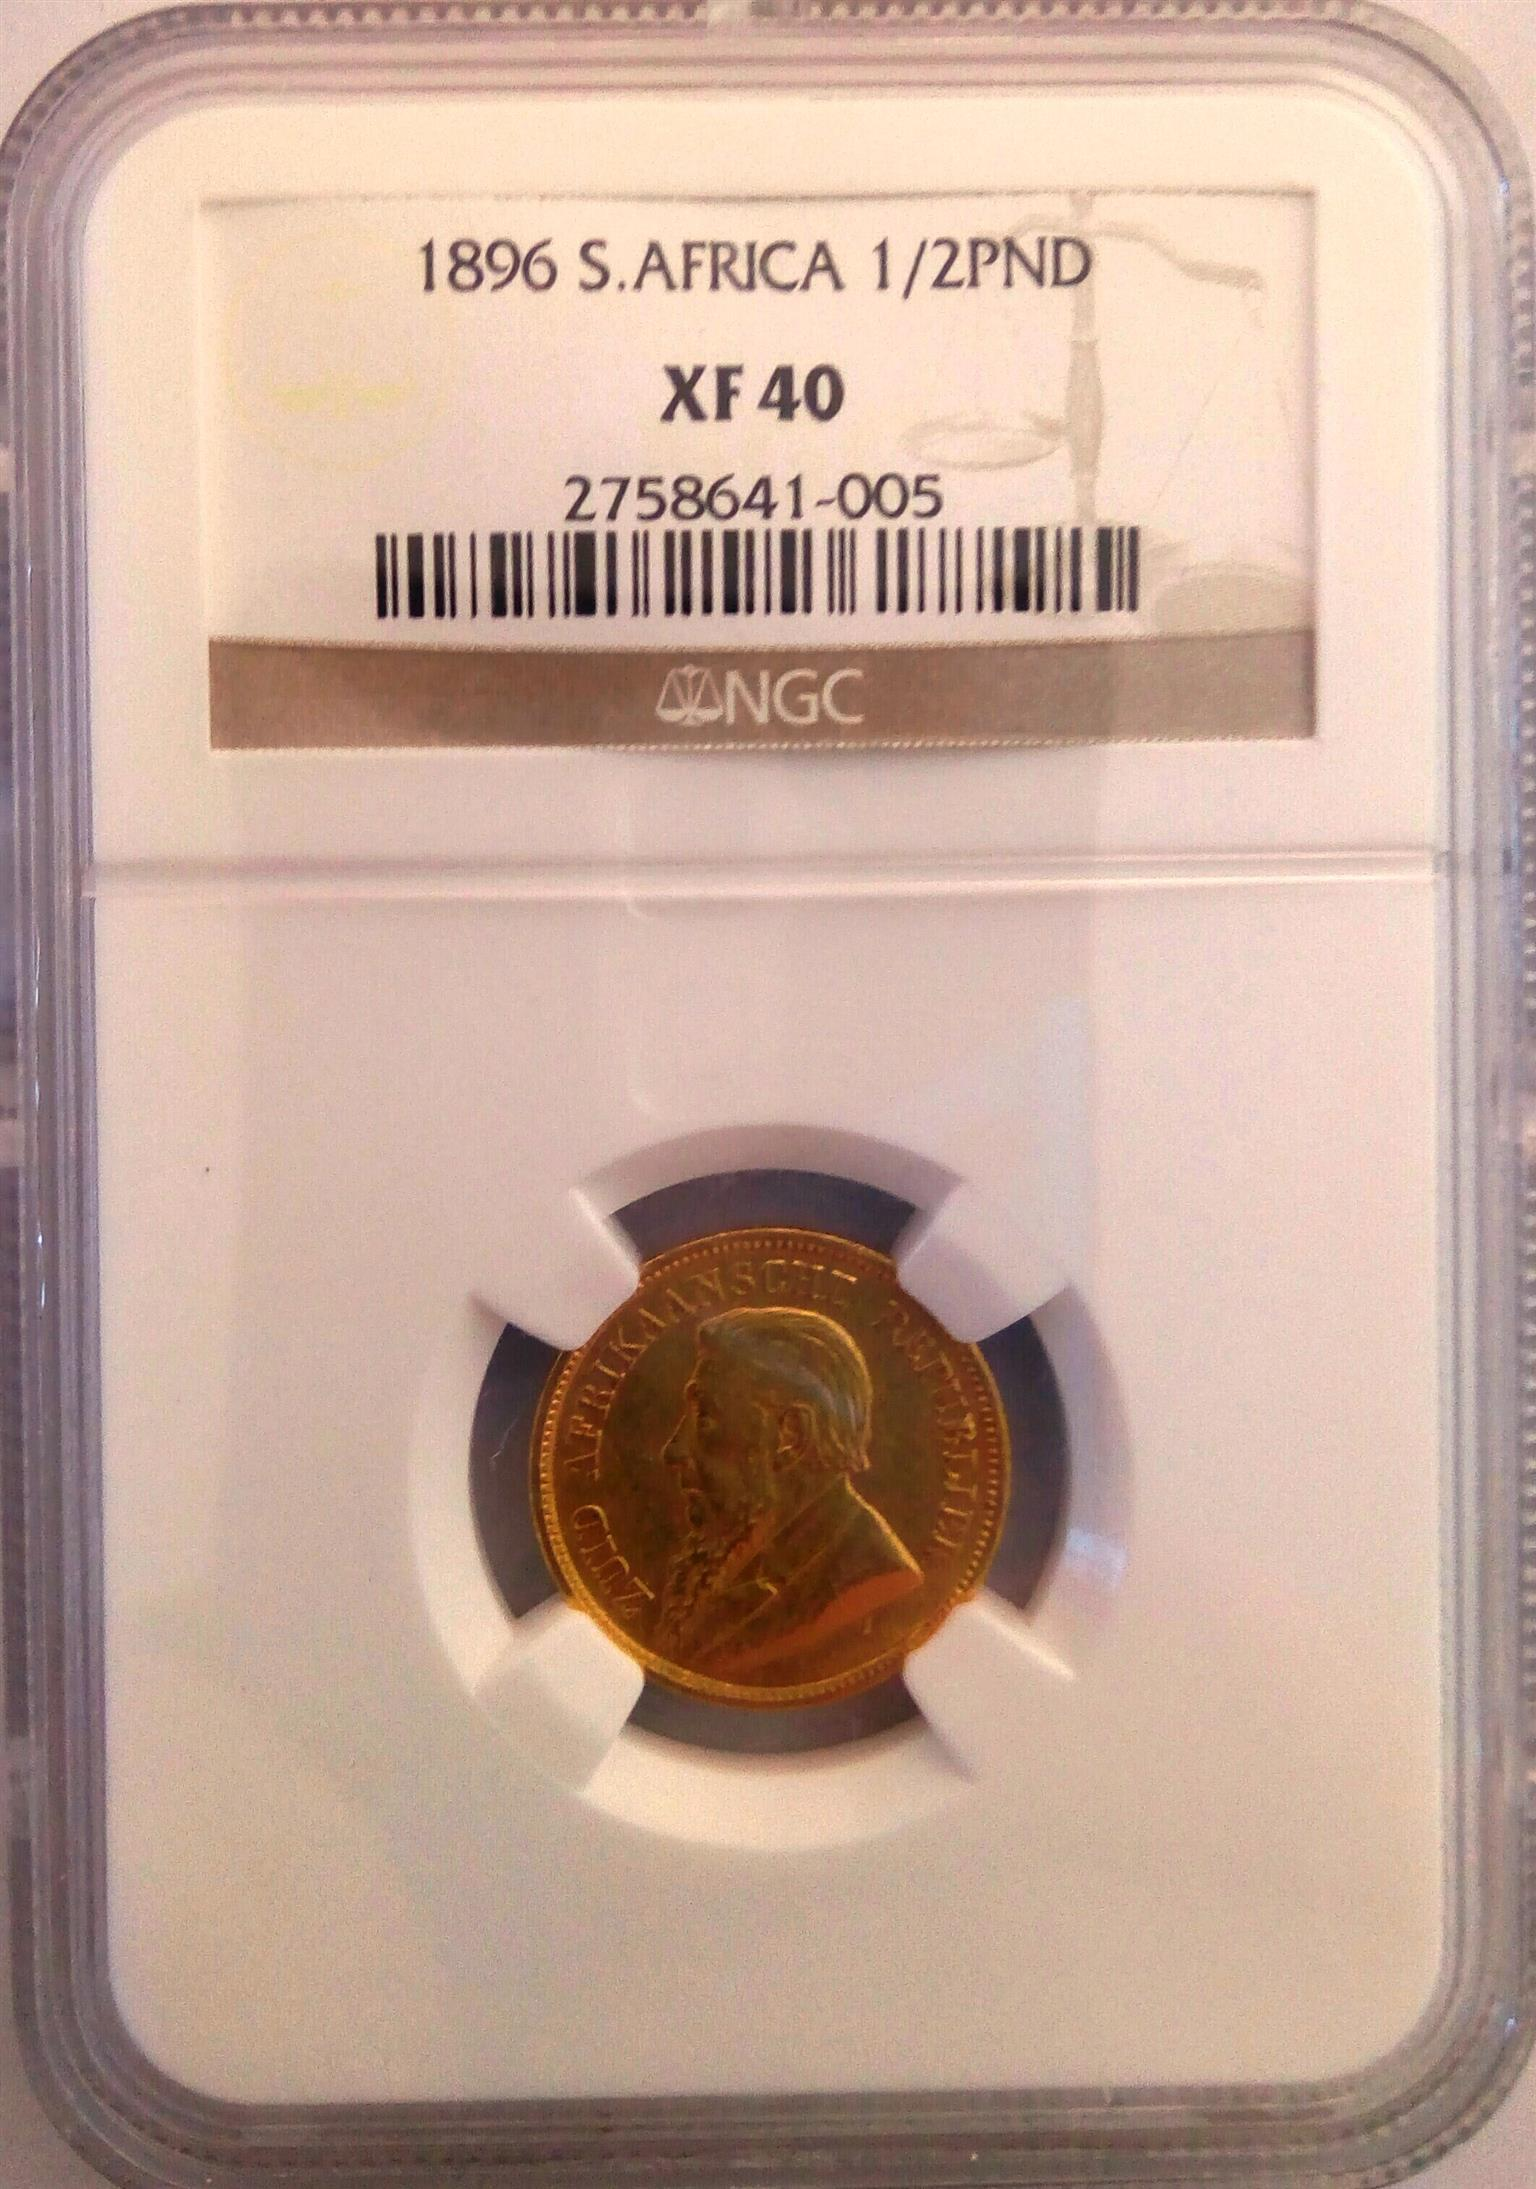 NGC Graded 1896 Halfpond XF40 - Hern's 2014 book value is R25000 - Selling for R10000